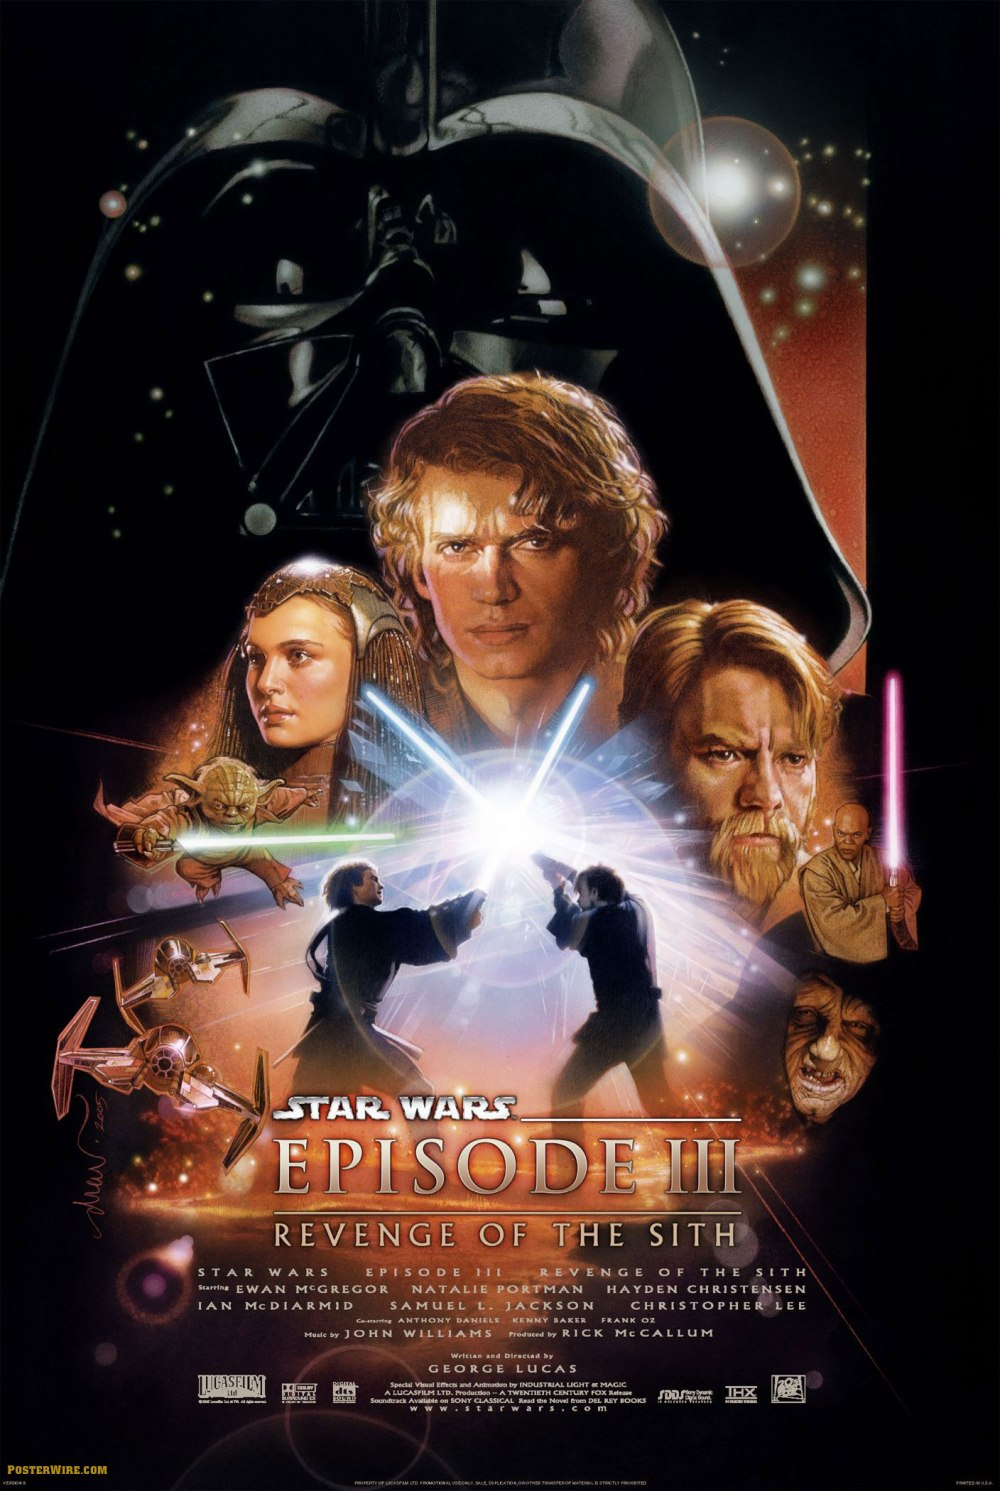 Star Wars: Episode III - Revenge of the Sith (2005, 20th Century Fox)